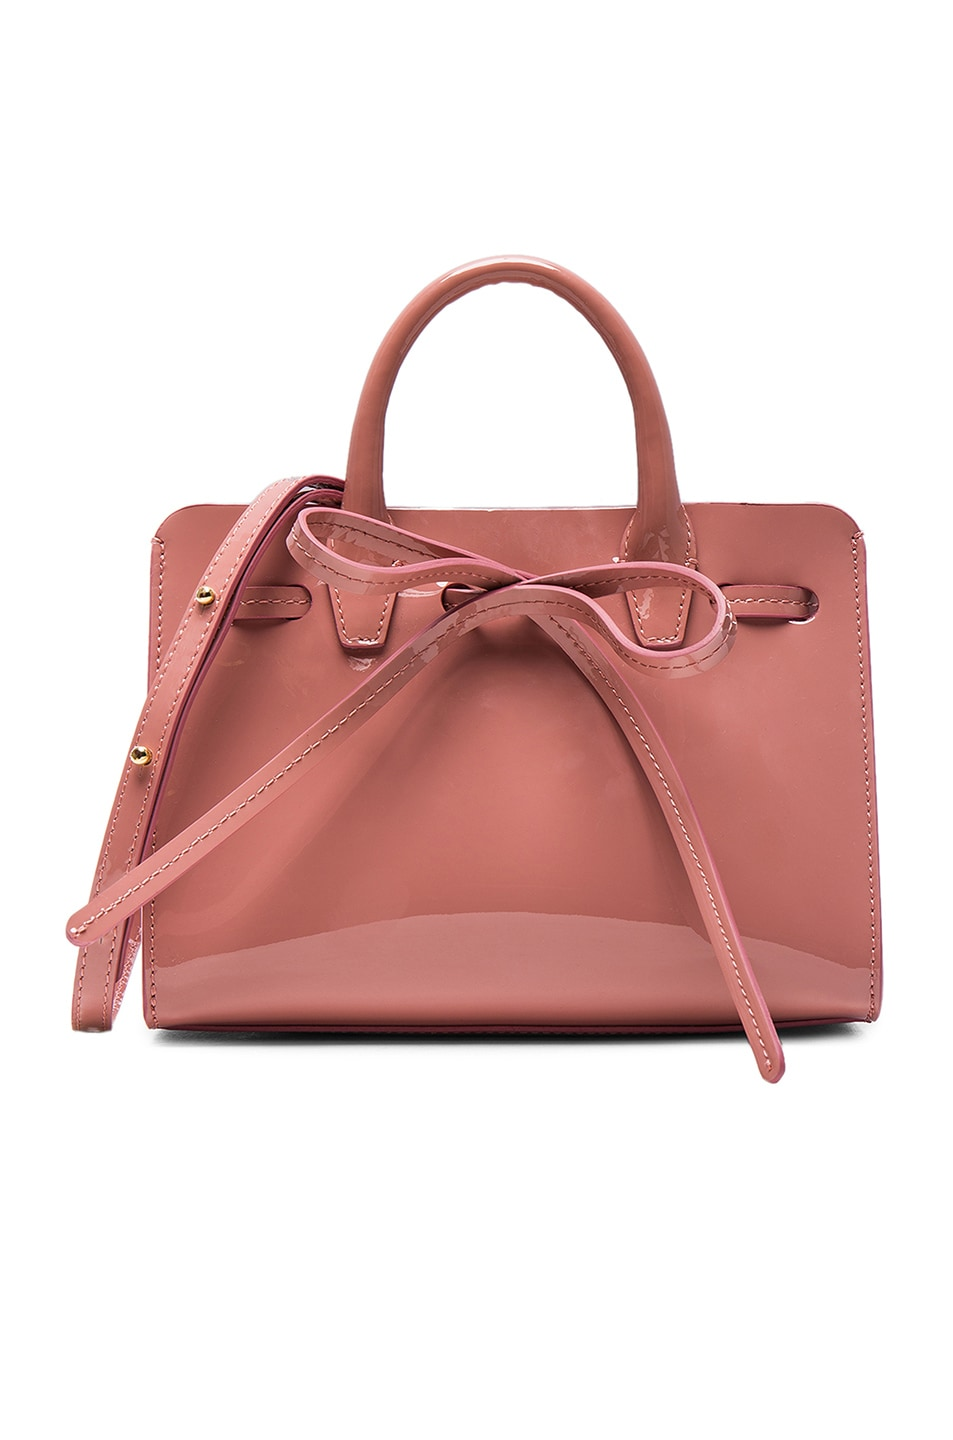 7e7494319931c Image 1 of Mansur Gavriel Mini Mini Sun Bag in Blush Patent